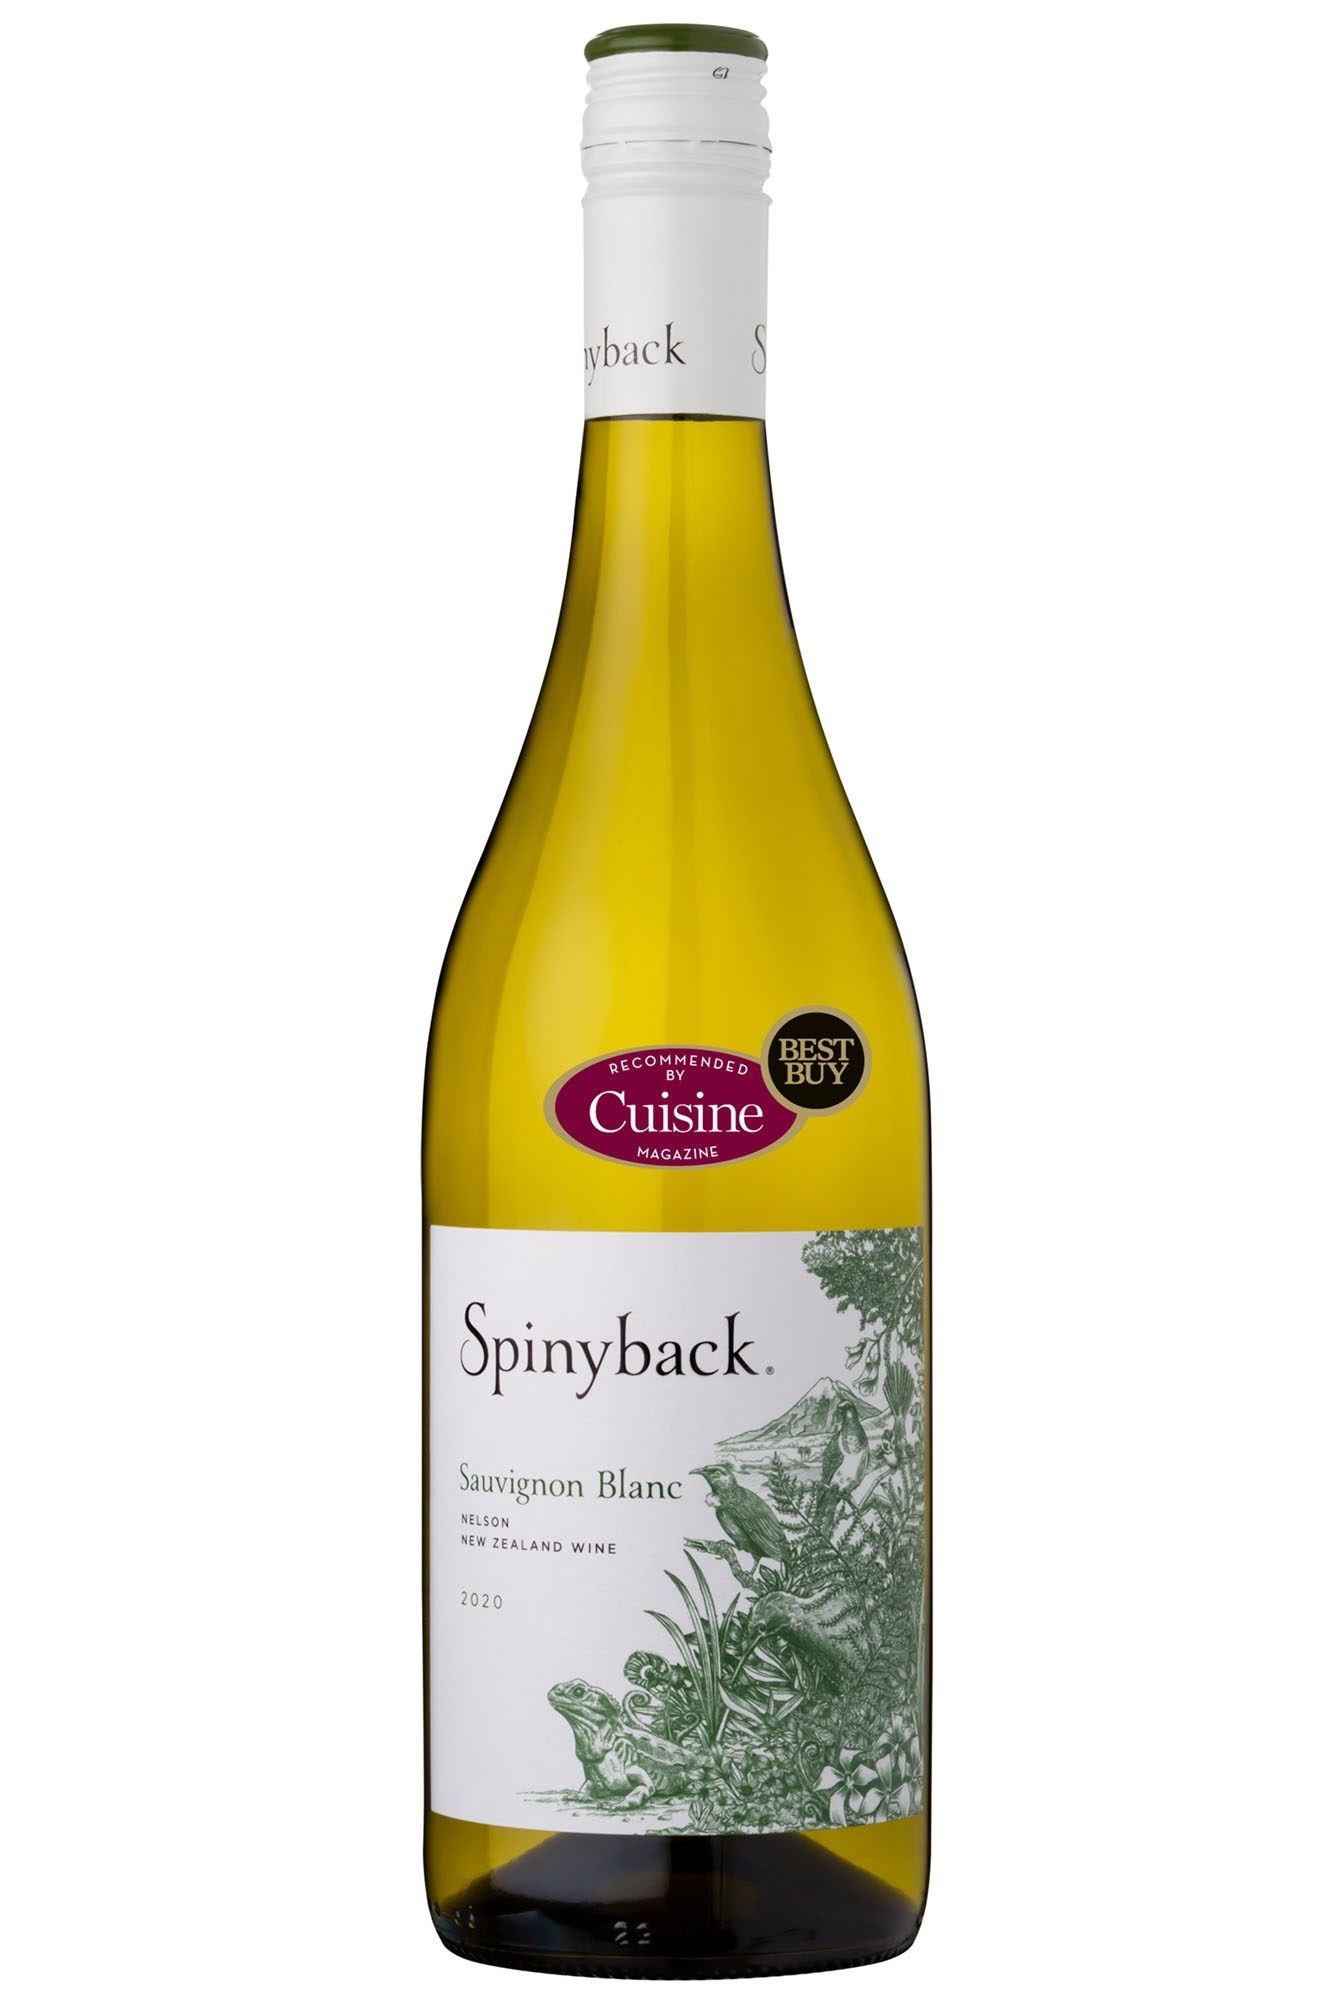 Spinyback Sauvignon Blanc 2020 (Marlborough)